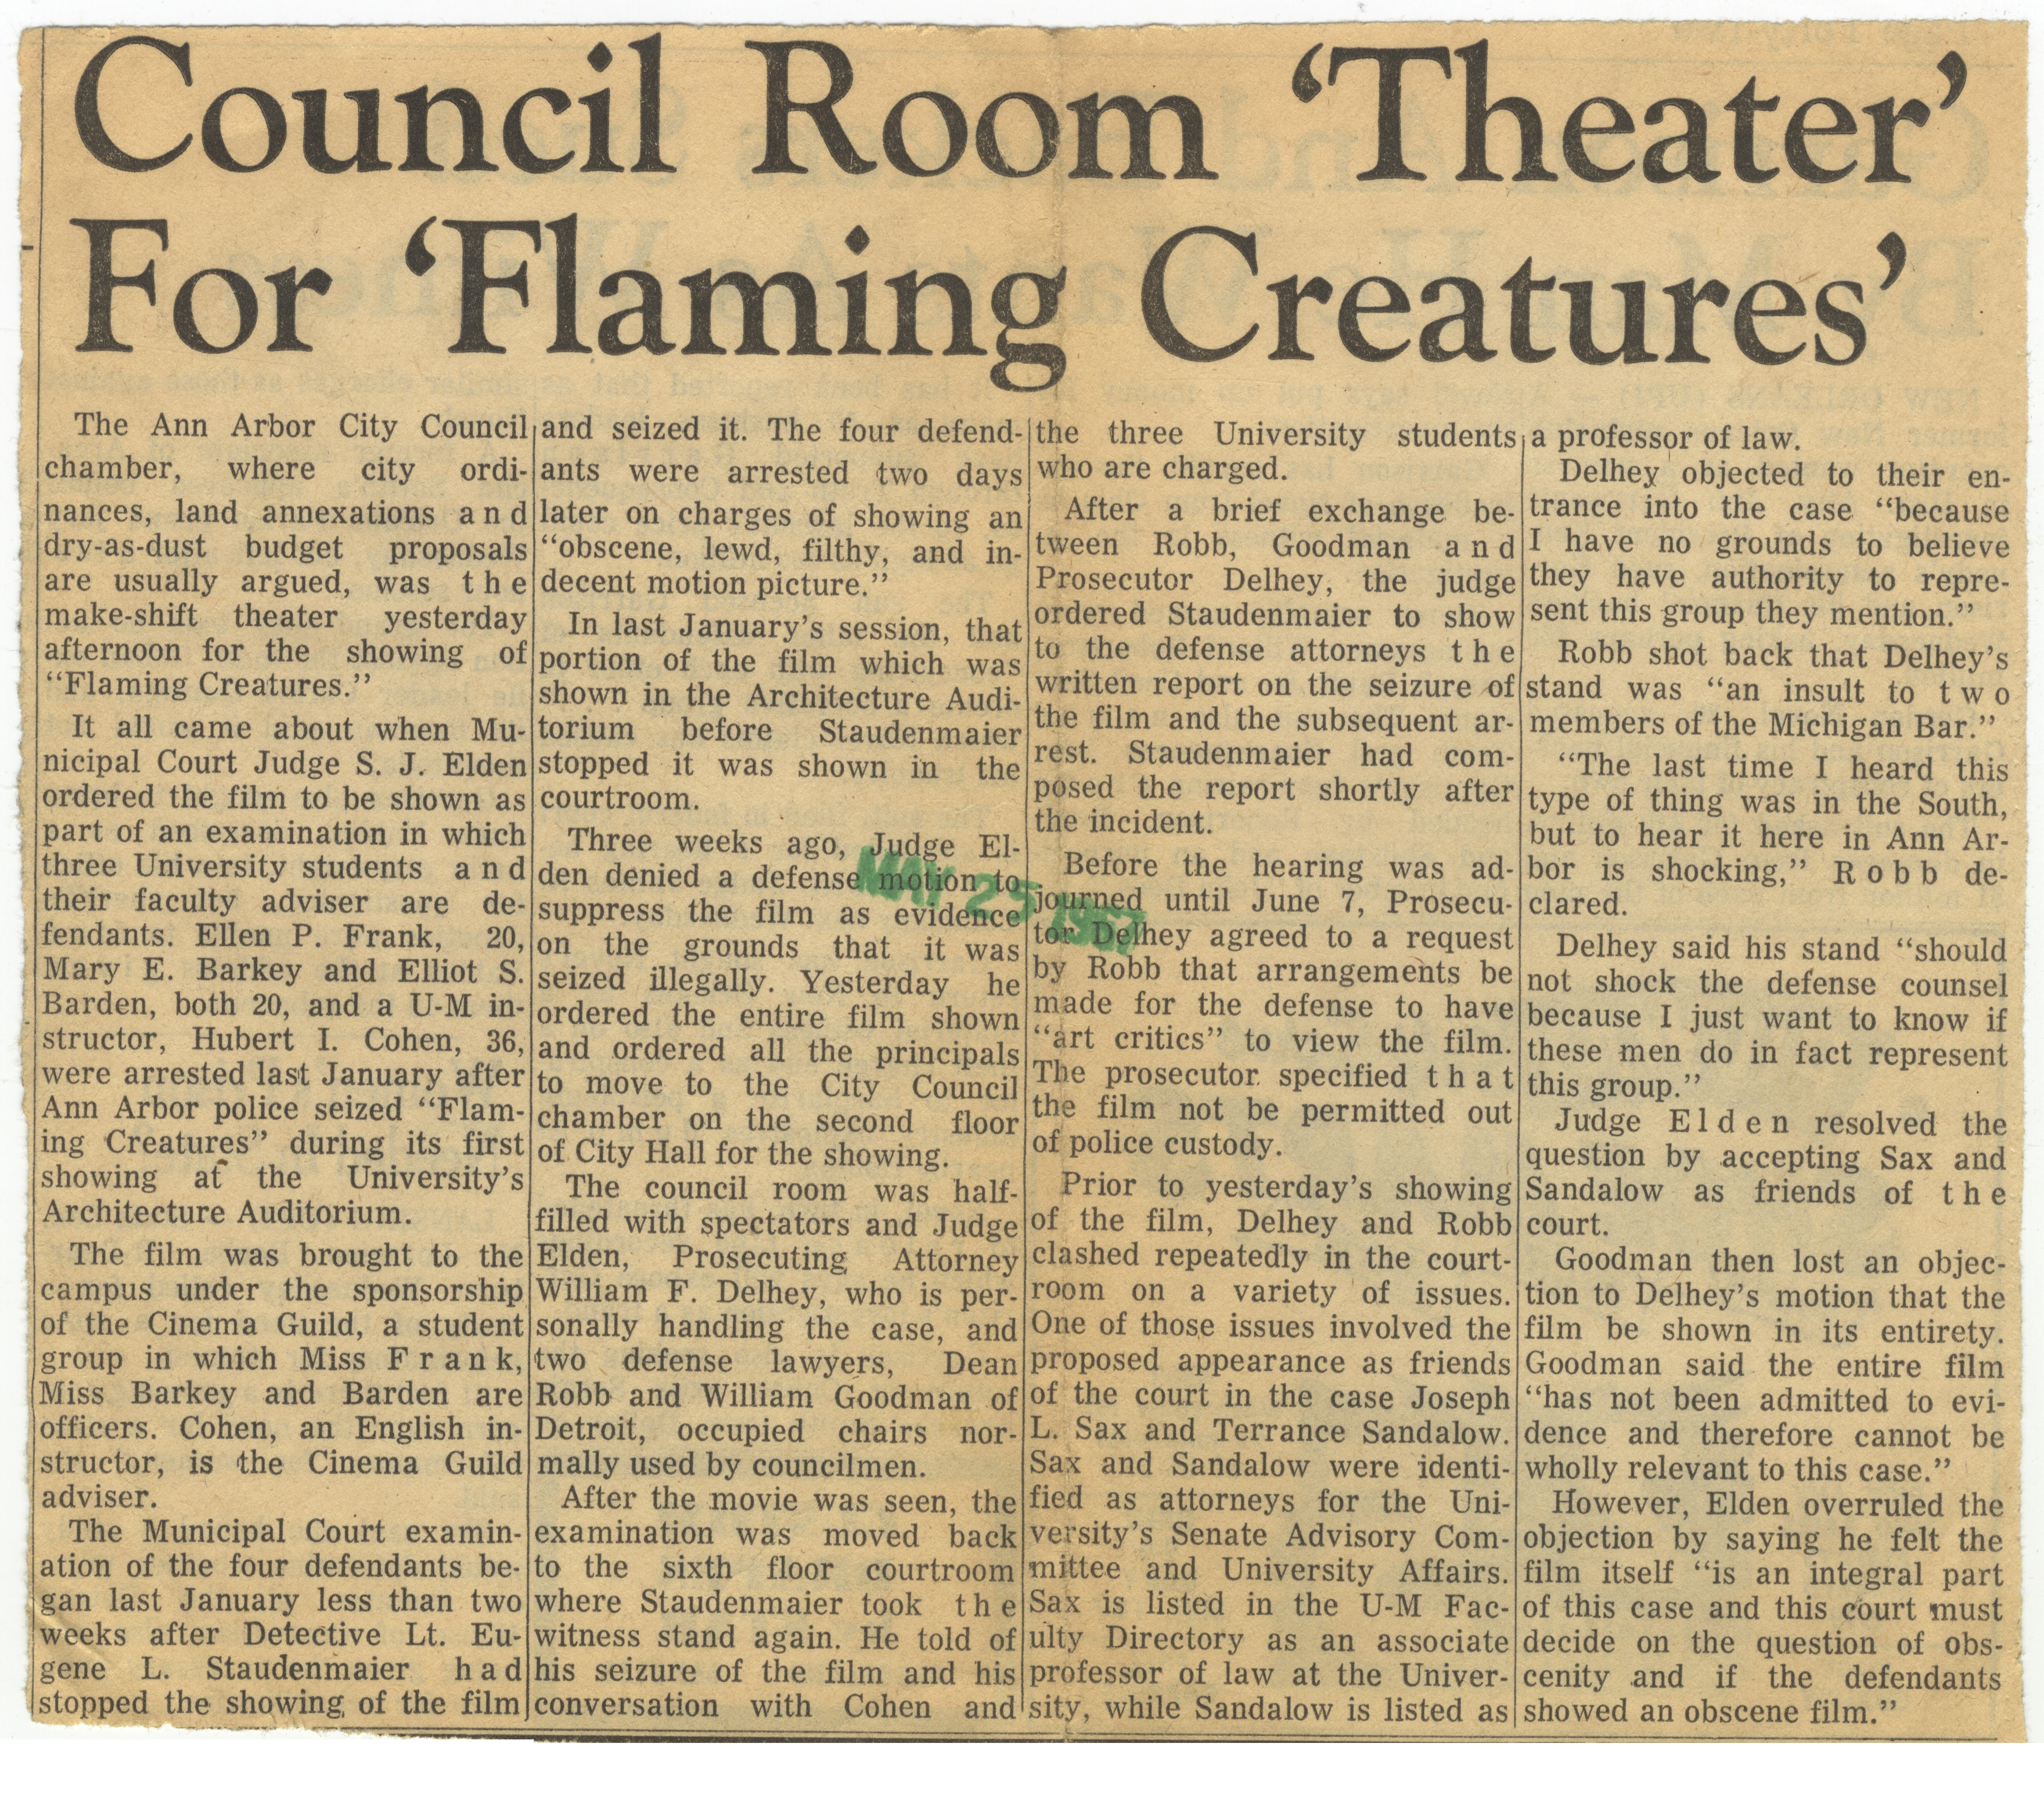 Council Room 'Theater' For 'Flaming Creatures' image